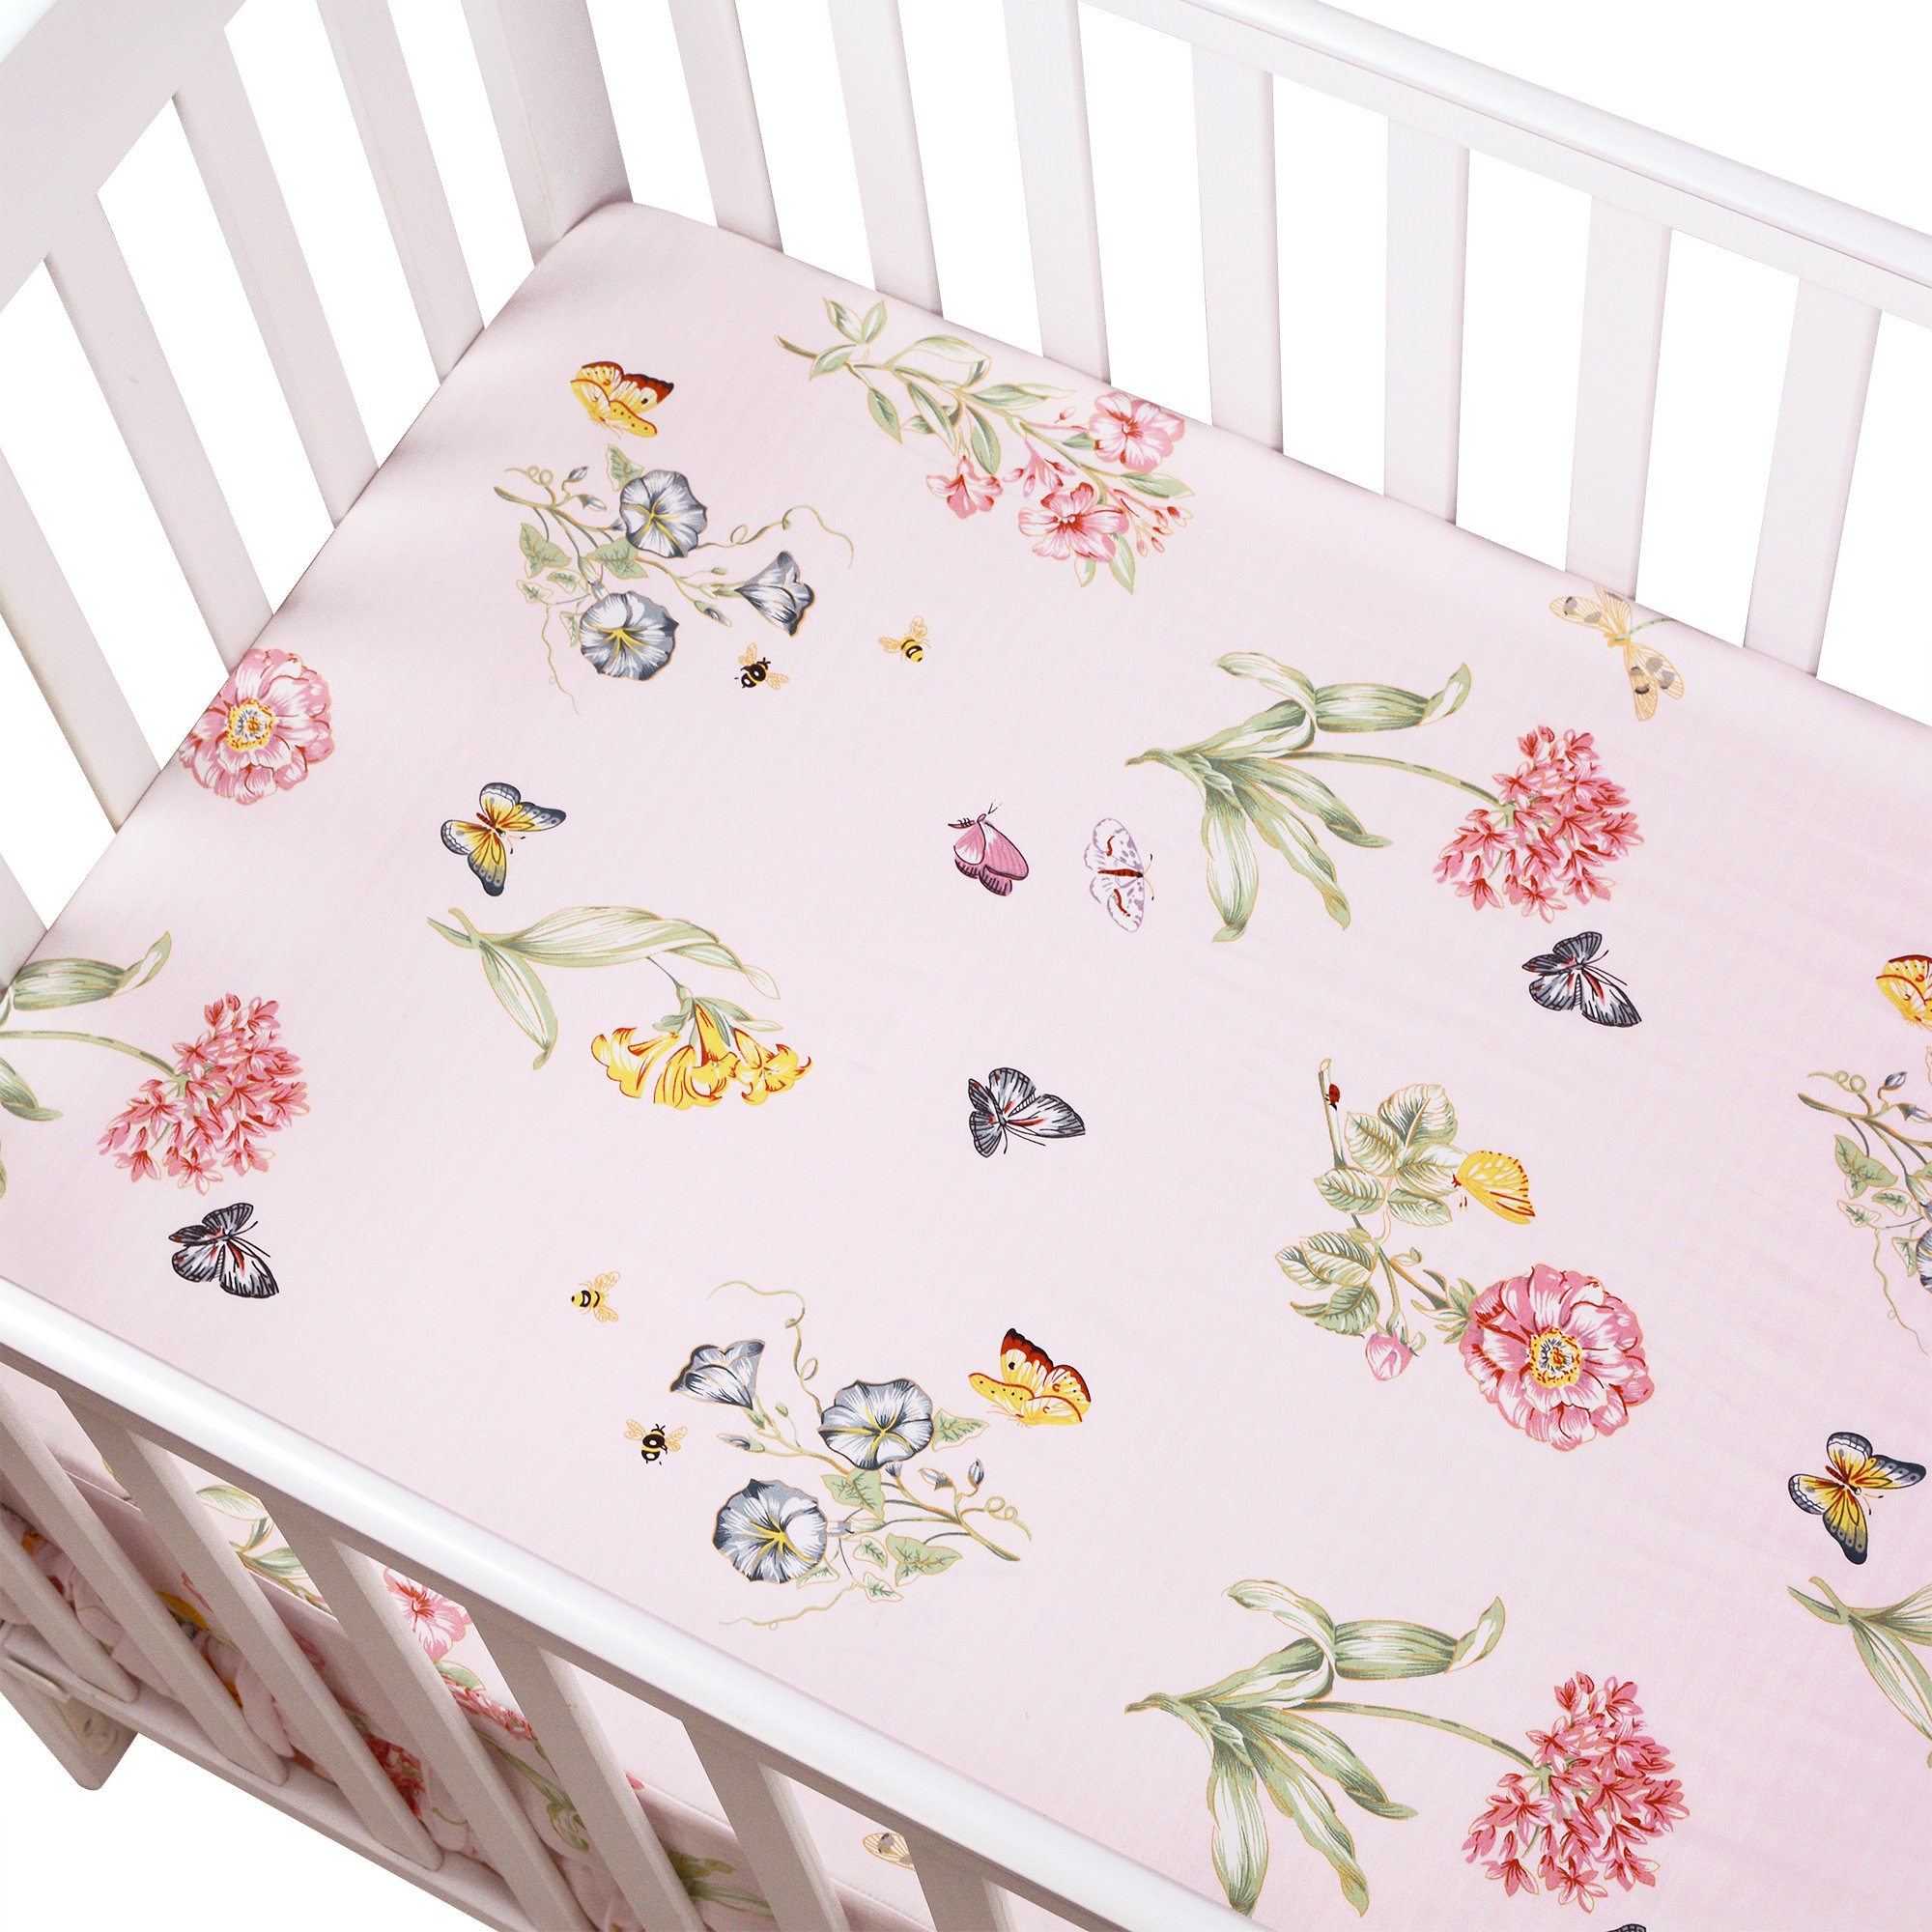 Mother & Kids Ups Free New 3 Pcs Beatles Baby Cot Set Bedding Crib For Baby Sheets Comforter Quilt Sheet Bumper The Latest Fashion Bedding Sets